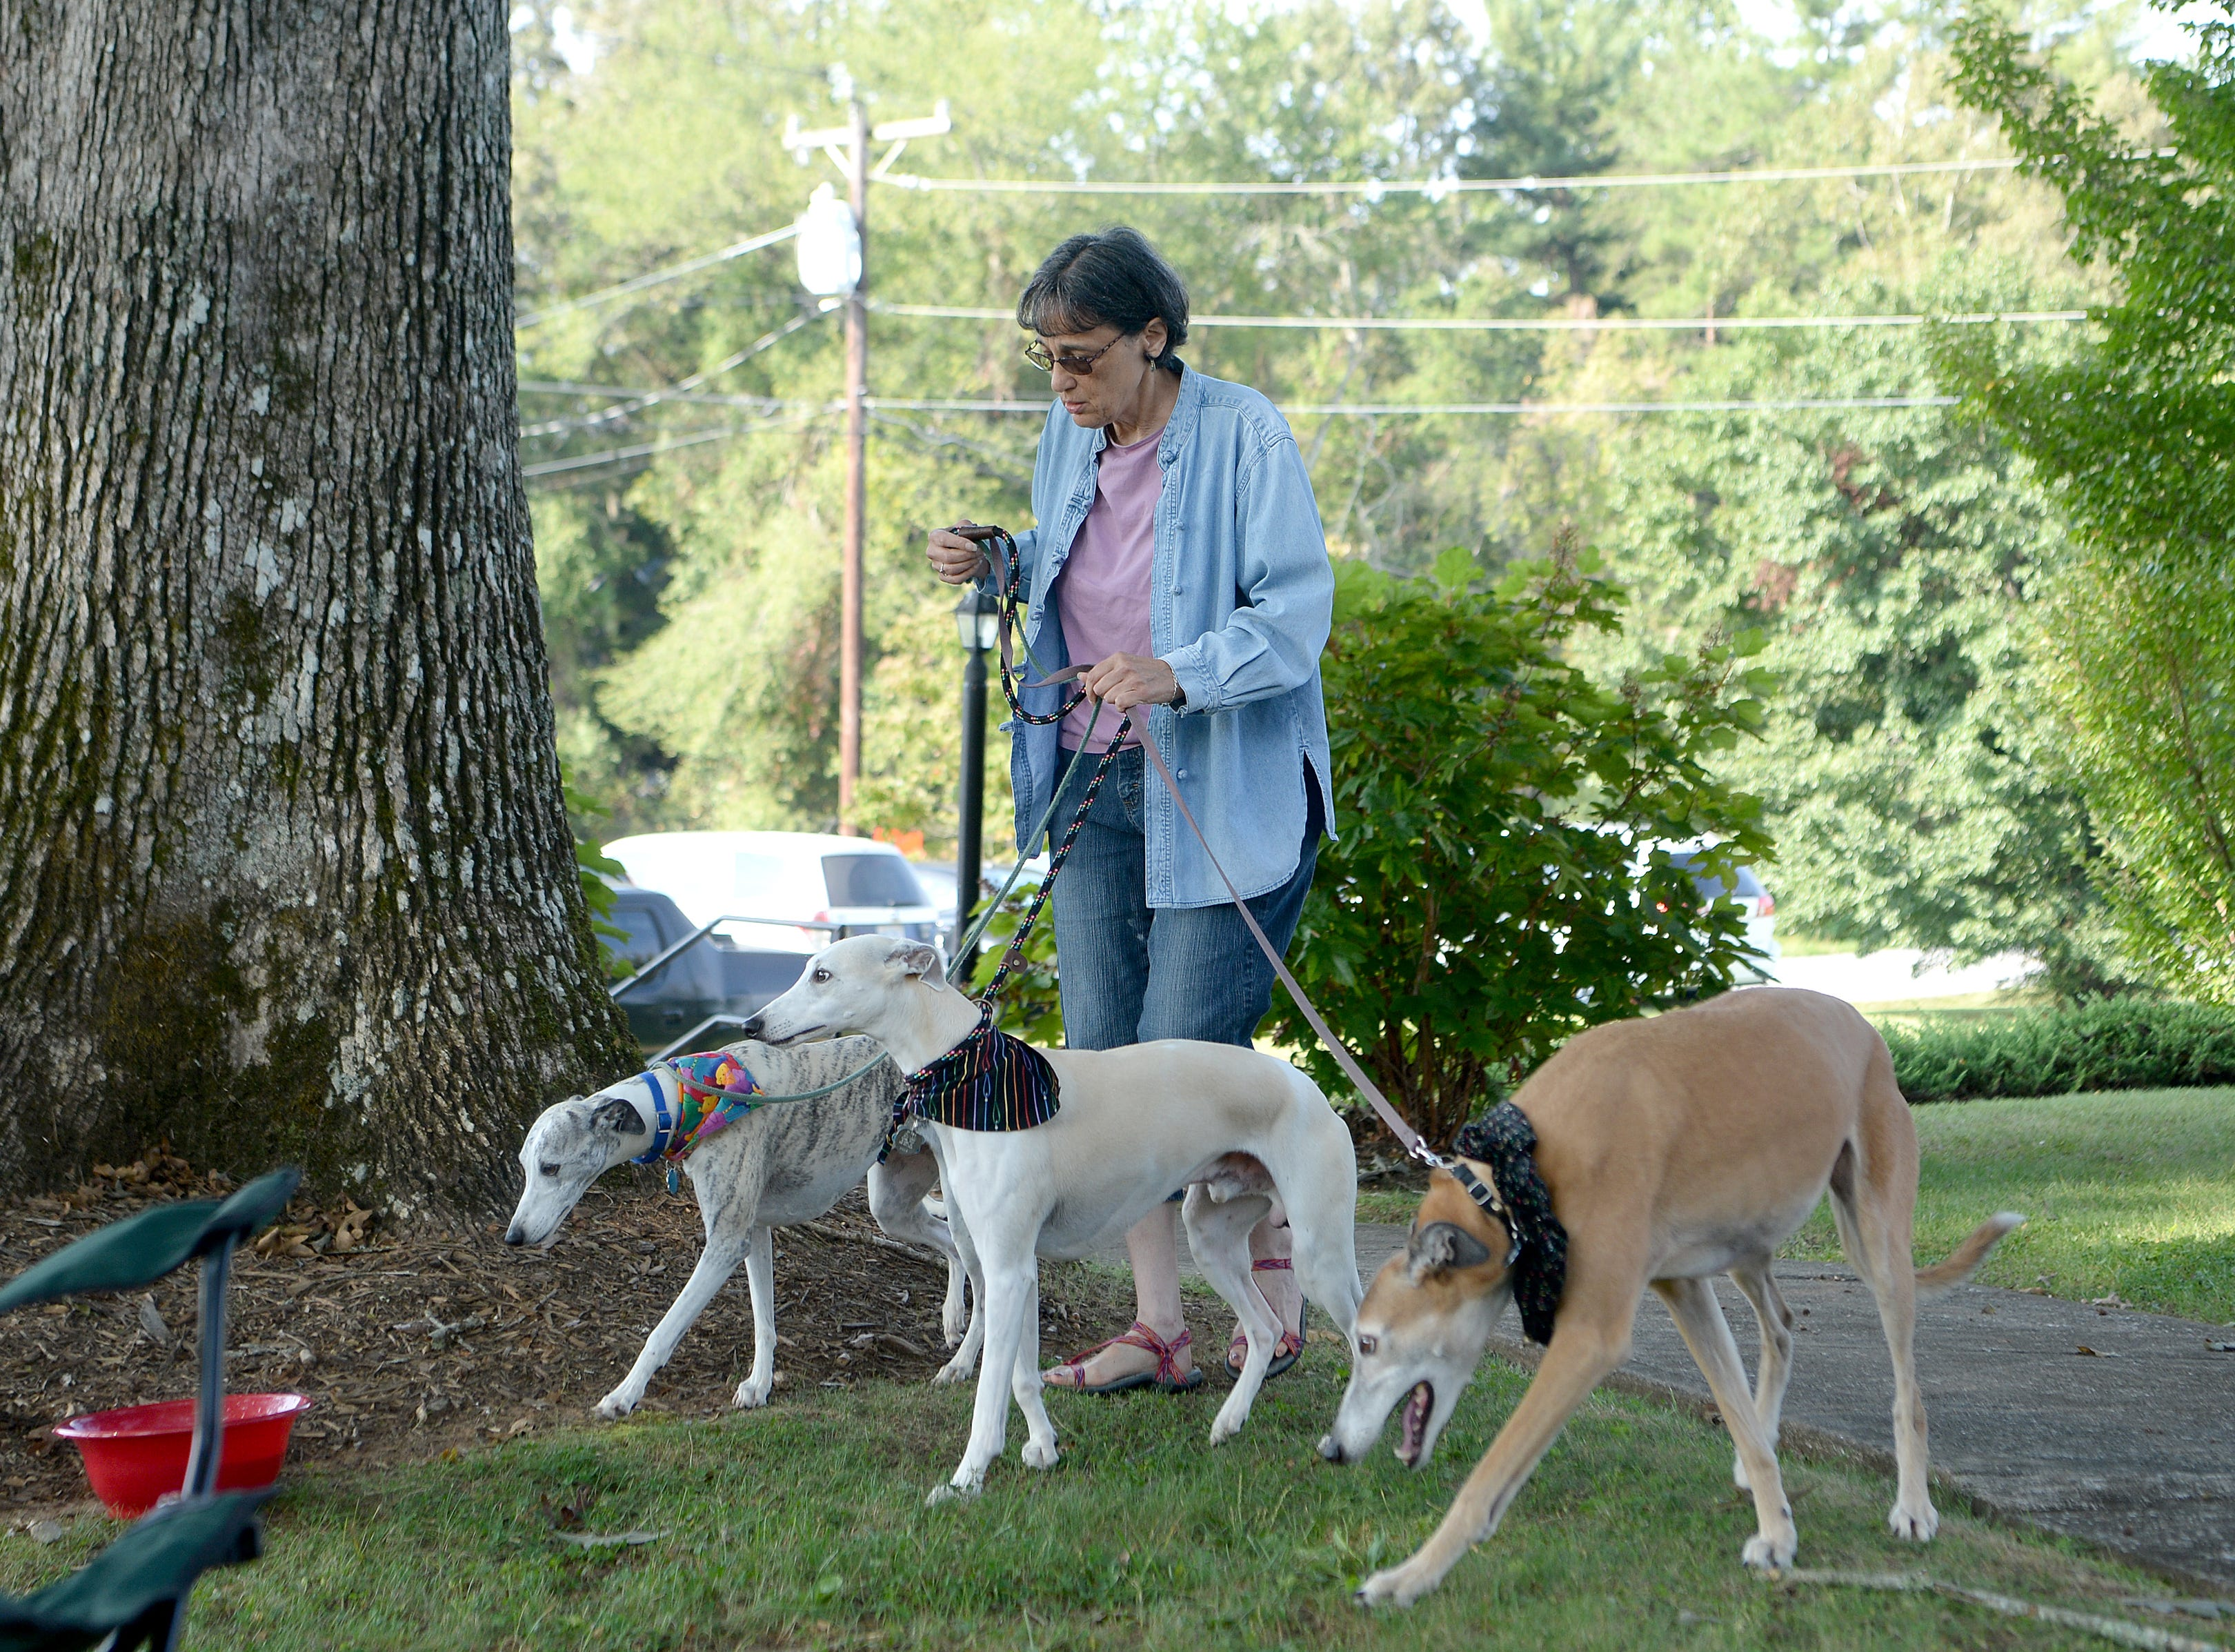 Terry Bentcover arrives with her whippets Talley, left, and Sunny, center, and greyhound, Ren, right, for the 10th Annual Blessing of the Pets at Mills River Presbyterian Church on Sept. 8, 2018.